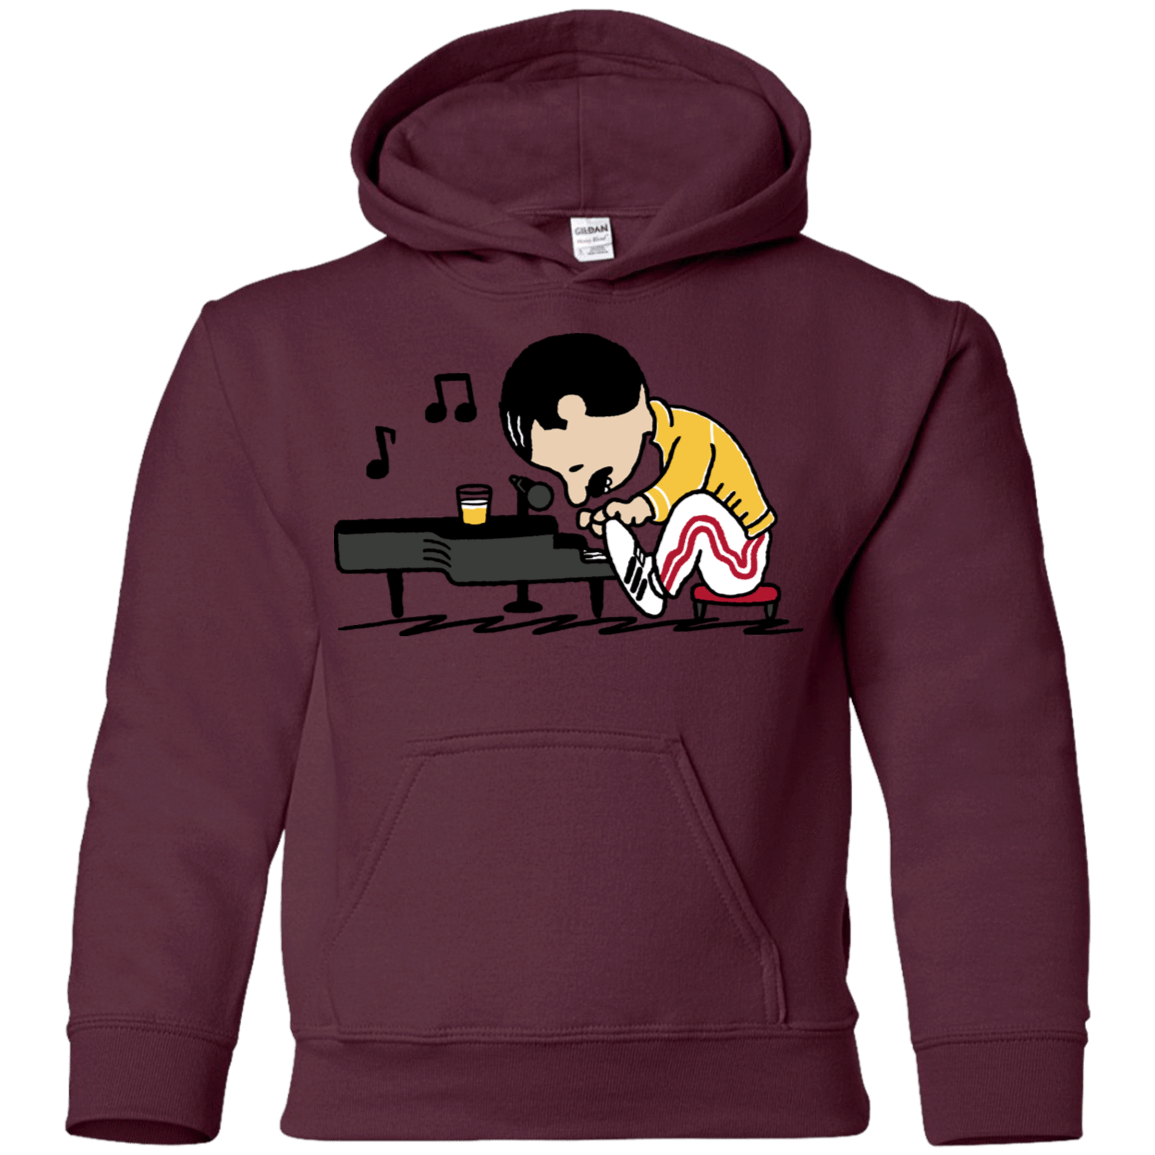 Sweatshirts Maroon / YS Queenuts Youth Hoodie